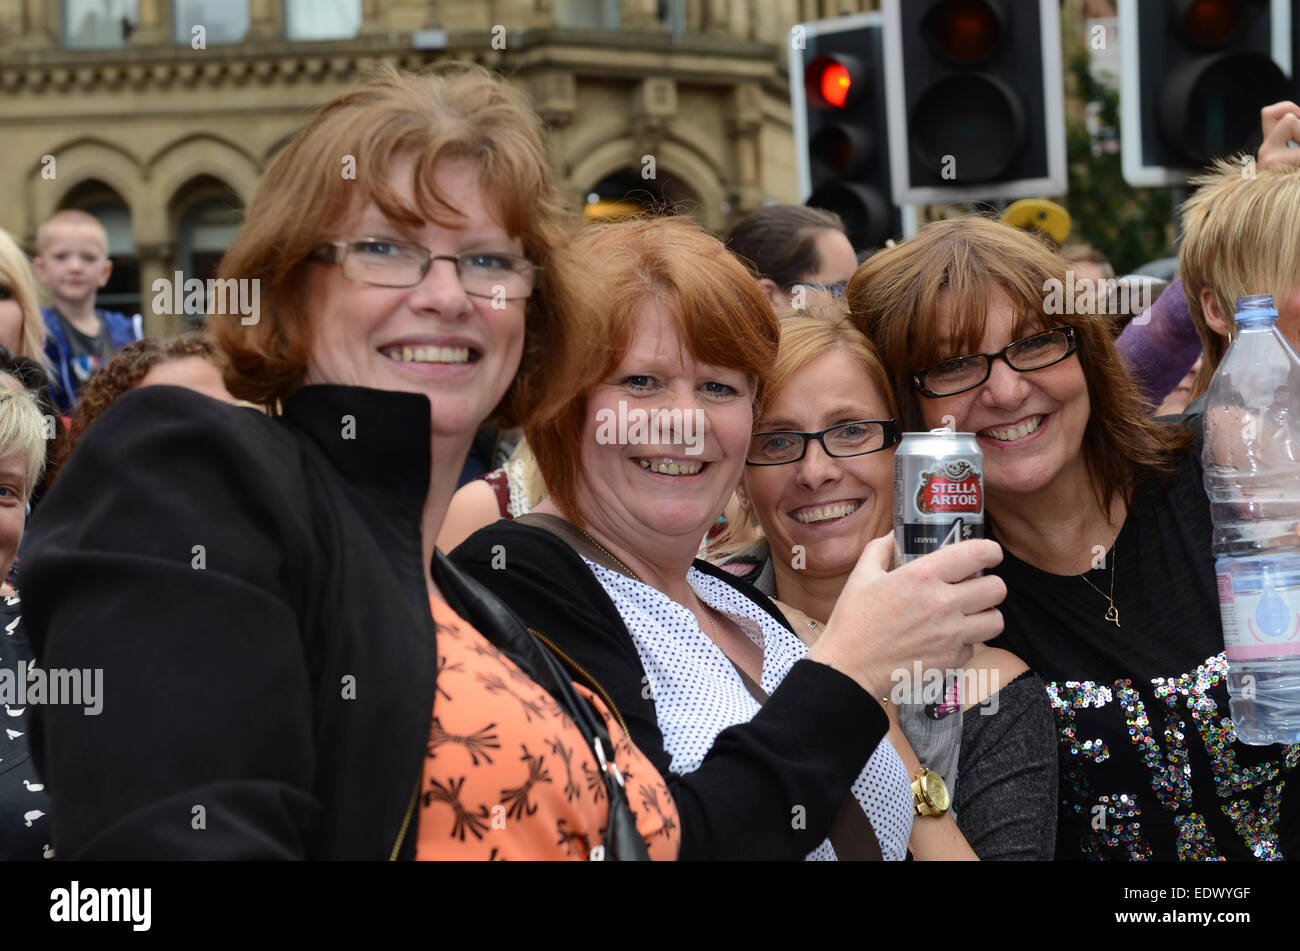 Onlookers at the Manchester Gay Pride Parade. - Stock Image